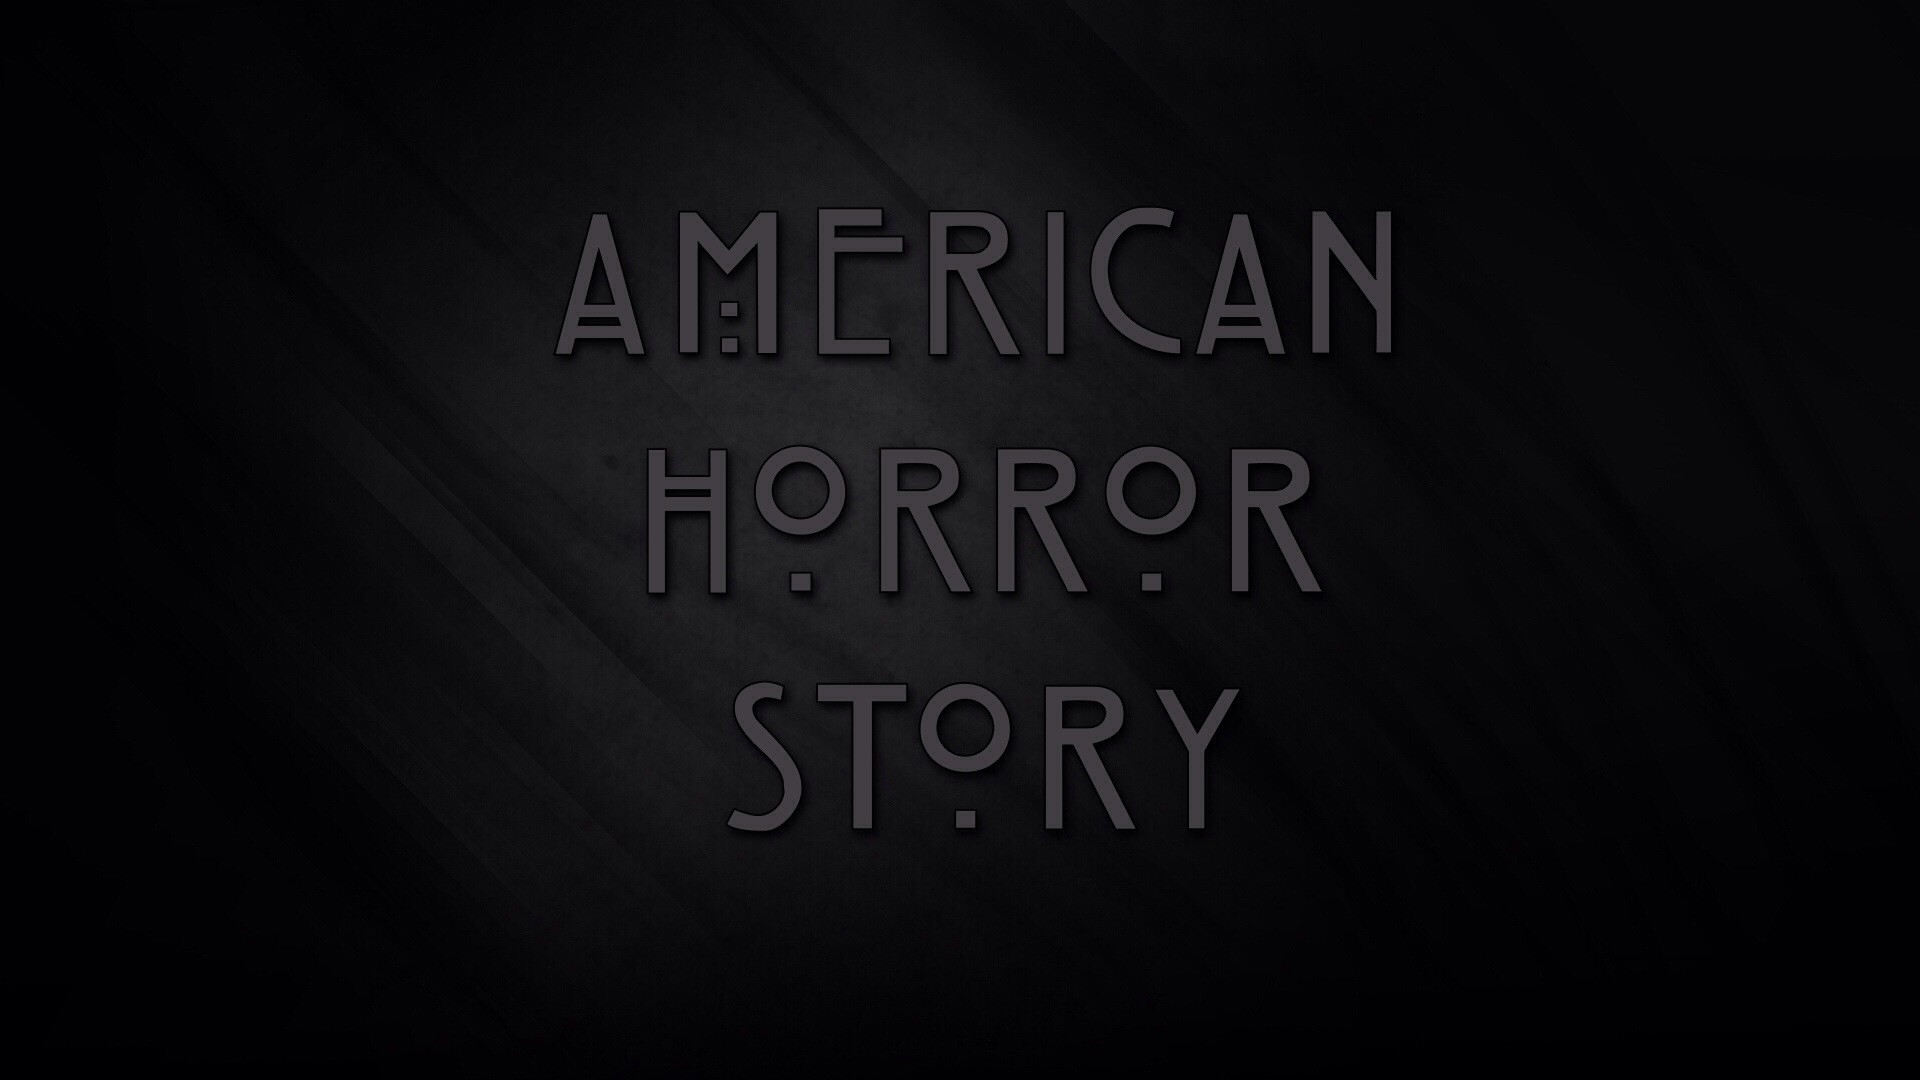 American Horror Story Iphone Wallpaper 52 Images